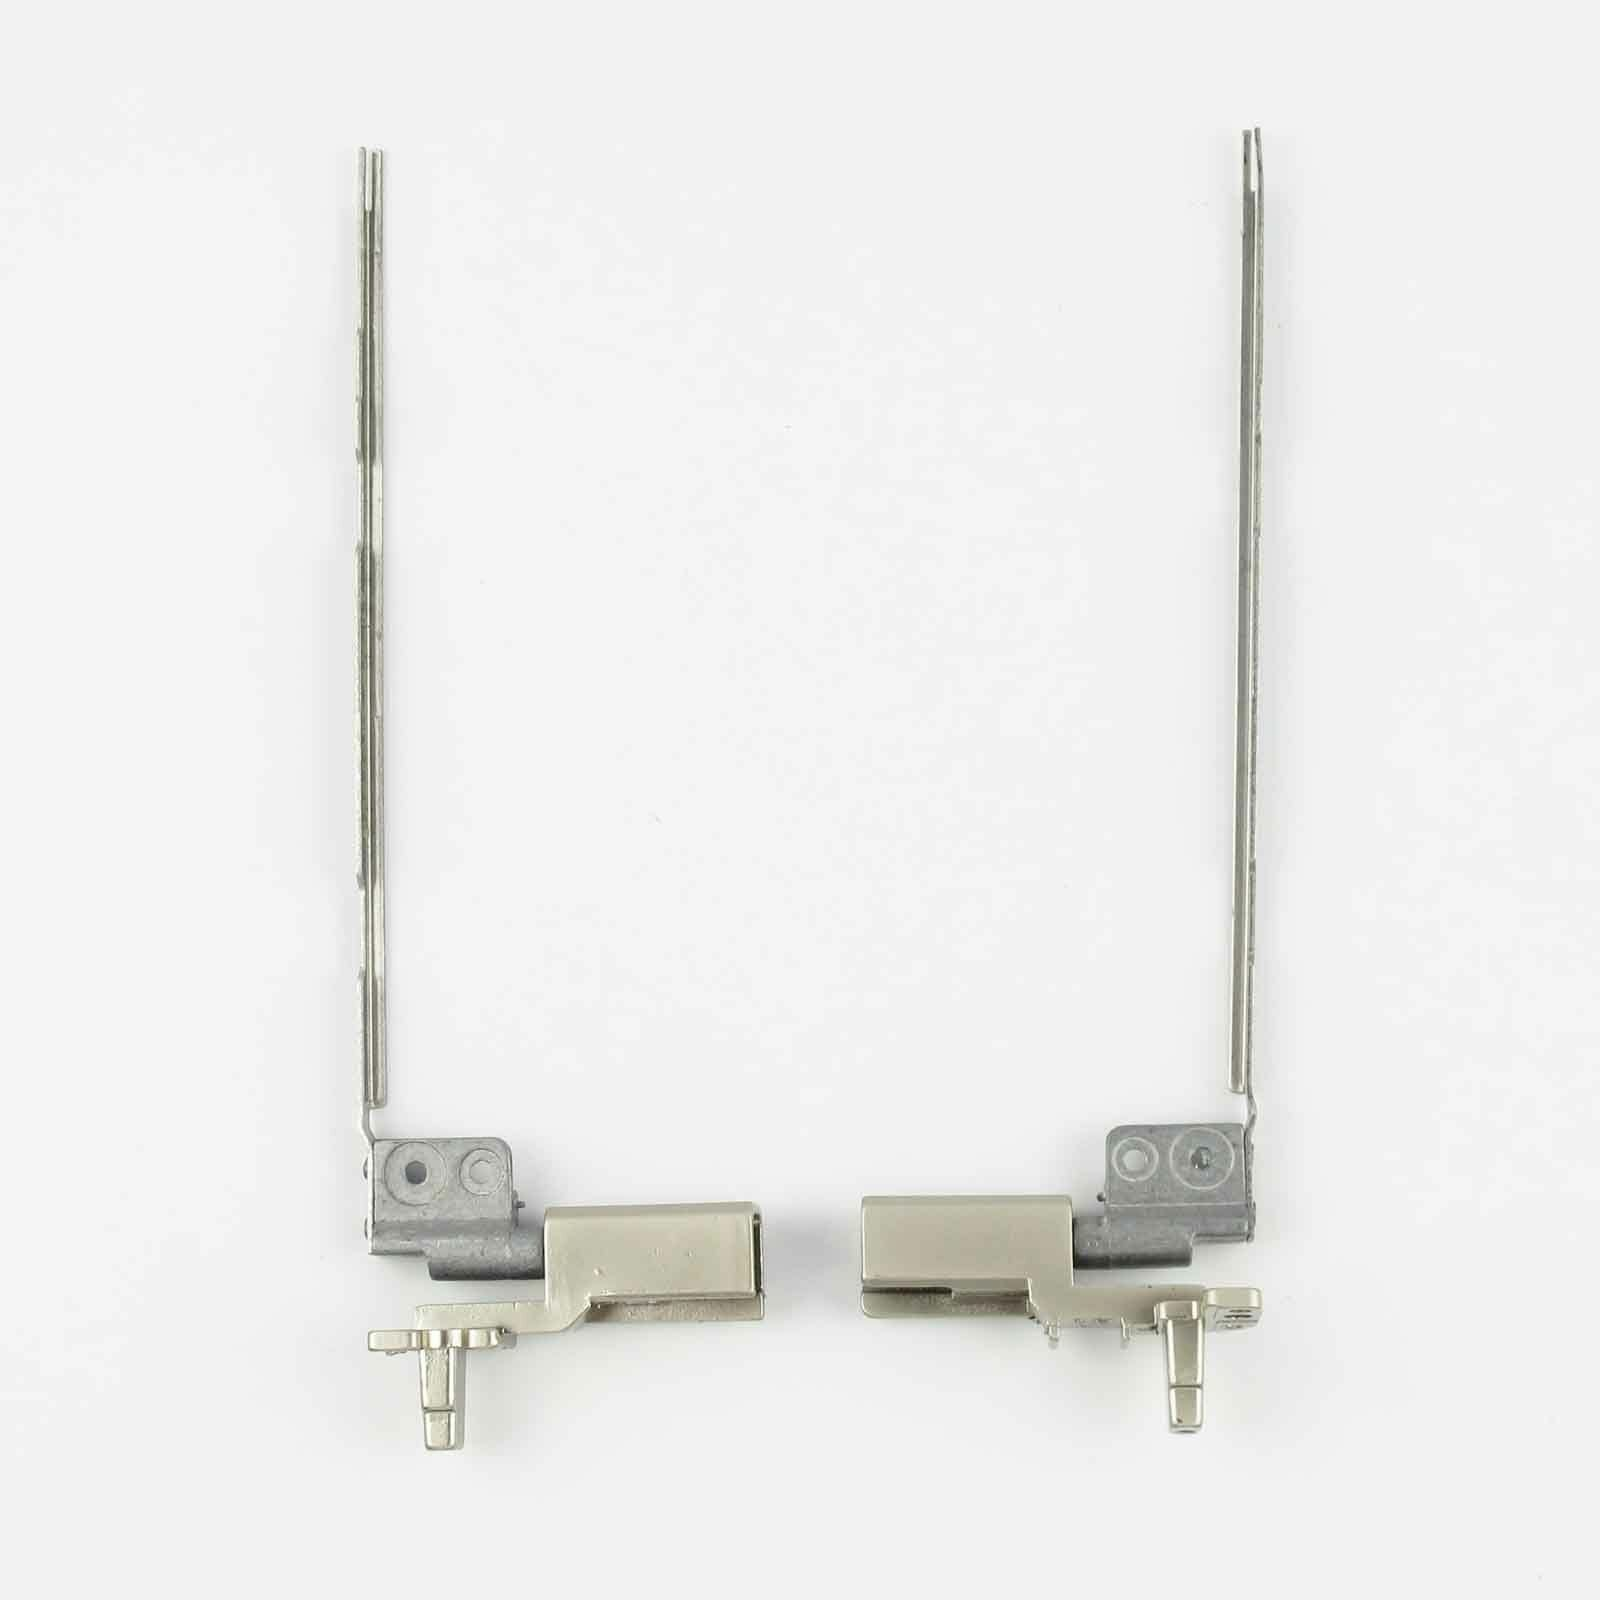 Laptop Lcd Hinges For Lenovo For Thinkpad T430 T430i Hinge Kit 04W6863 04W6864 0B41075 Left& Right Screen Axis Set LAPTOP HINGES